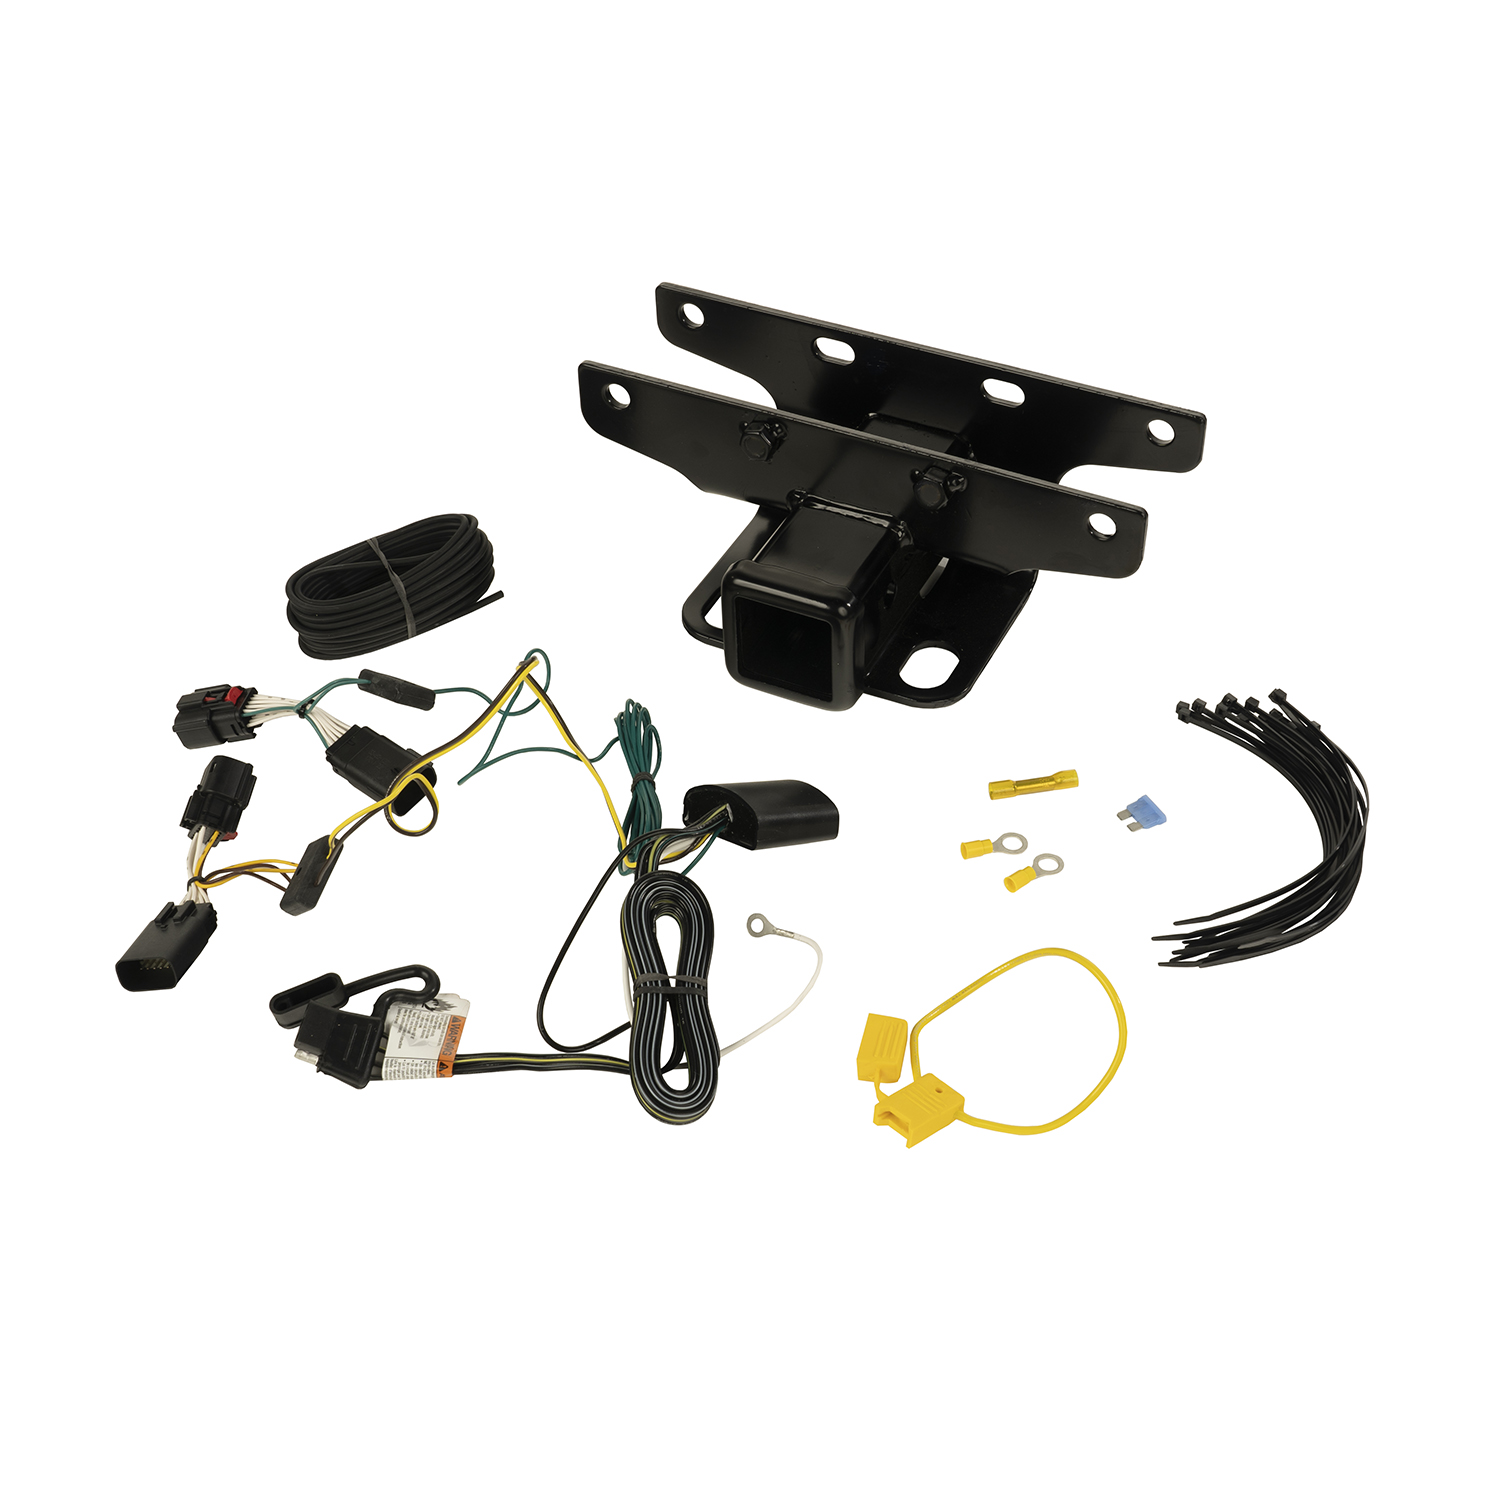 trailer hitch wiring harness trailer hitch kit wiring harness 18 19 jeep wrangler jl trailer hitch wiring harness for 2018 equinox trailer hitch kit wiring harness 18 19